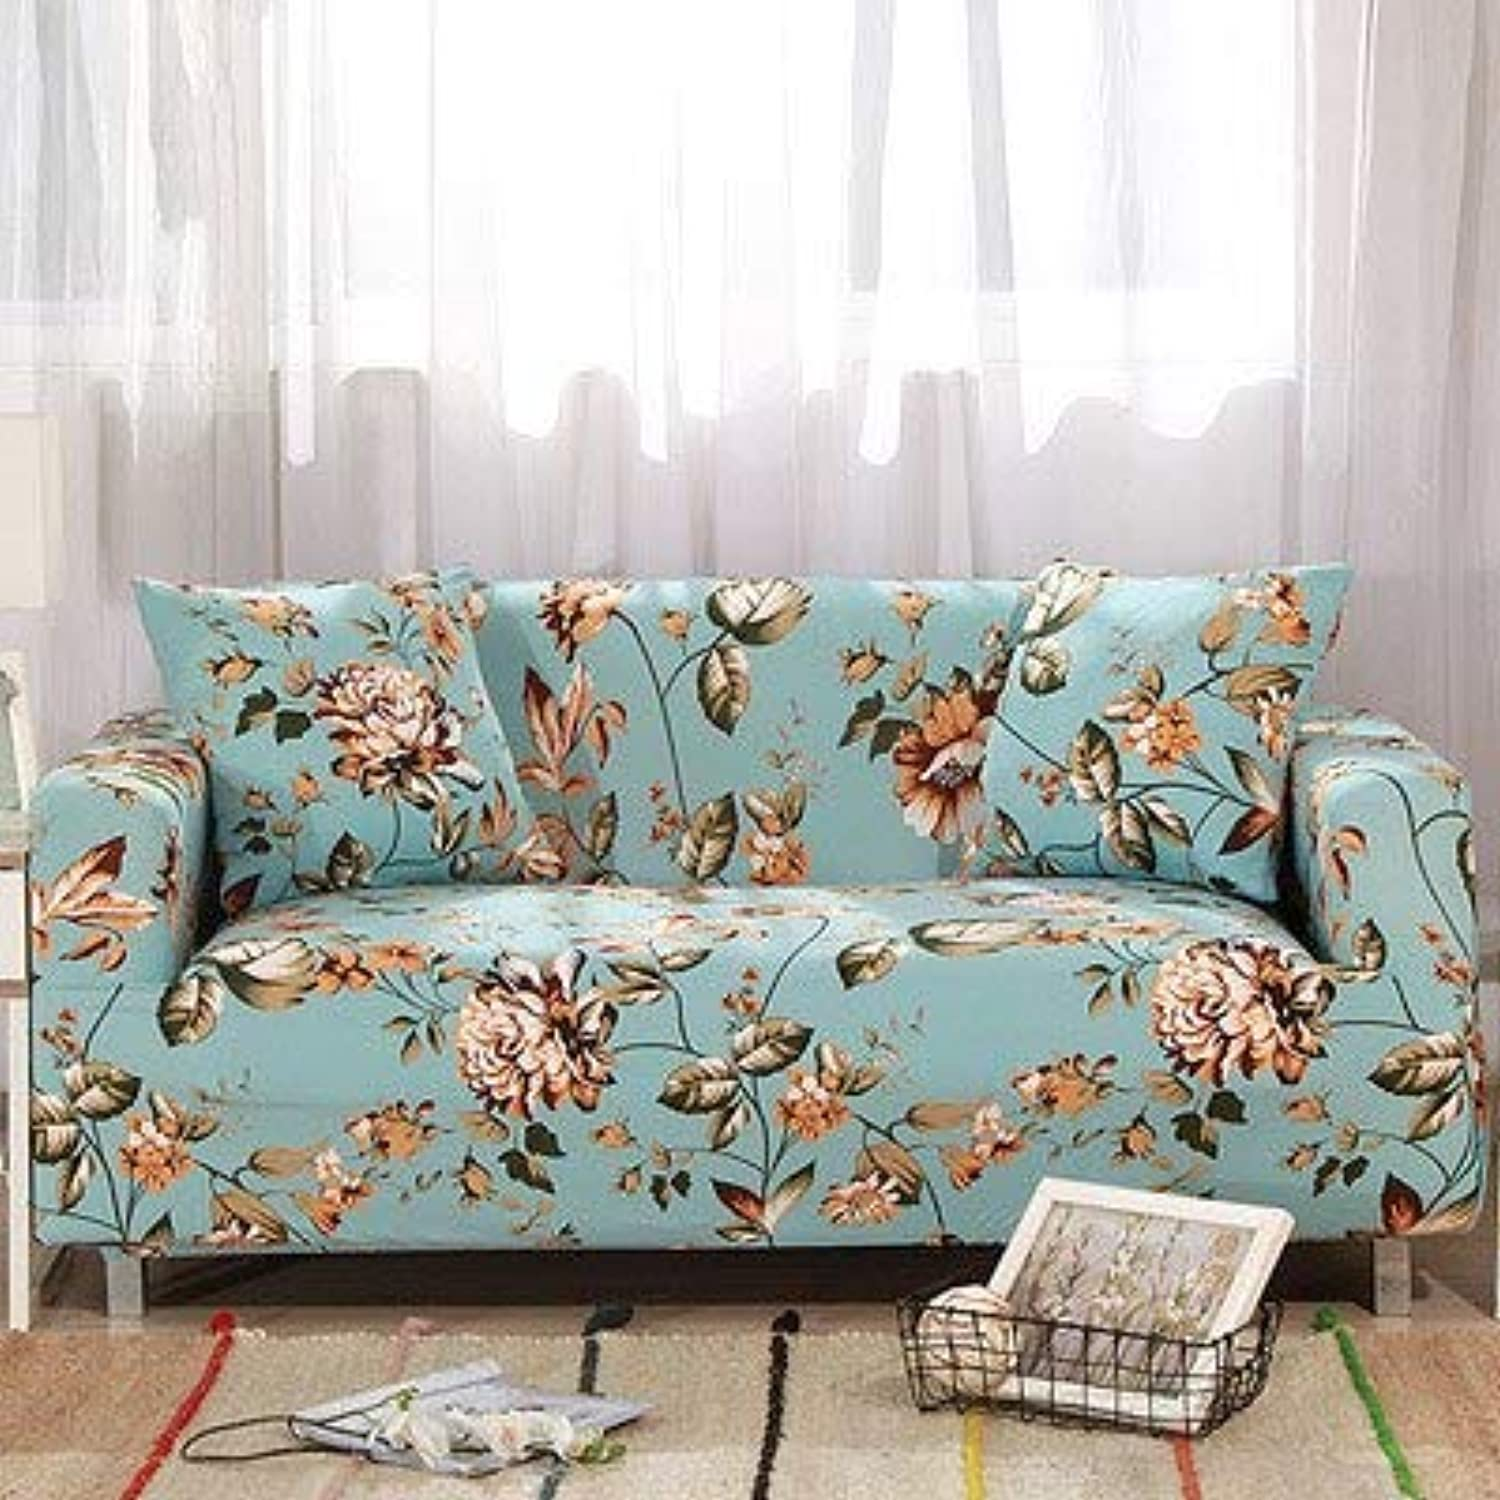 Farmerly Elastic Sofa Cover Printed Flowers Slipcover Tight Wrap All-Inclusive Corner Sofa Cover Stretch Furniture Covers 1 2 3 4 Seater   5, Singer seat